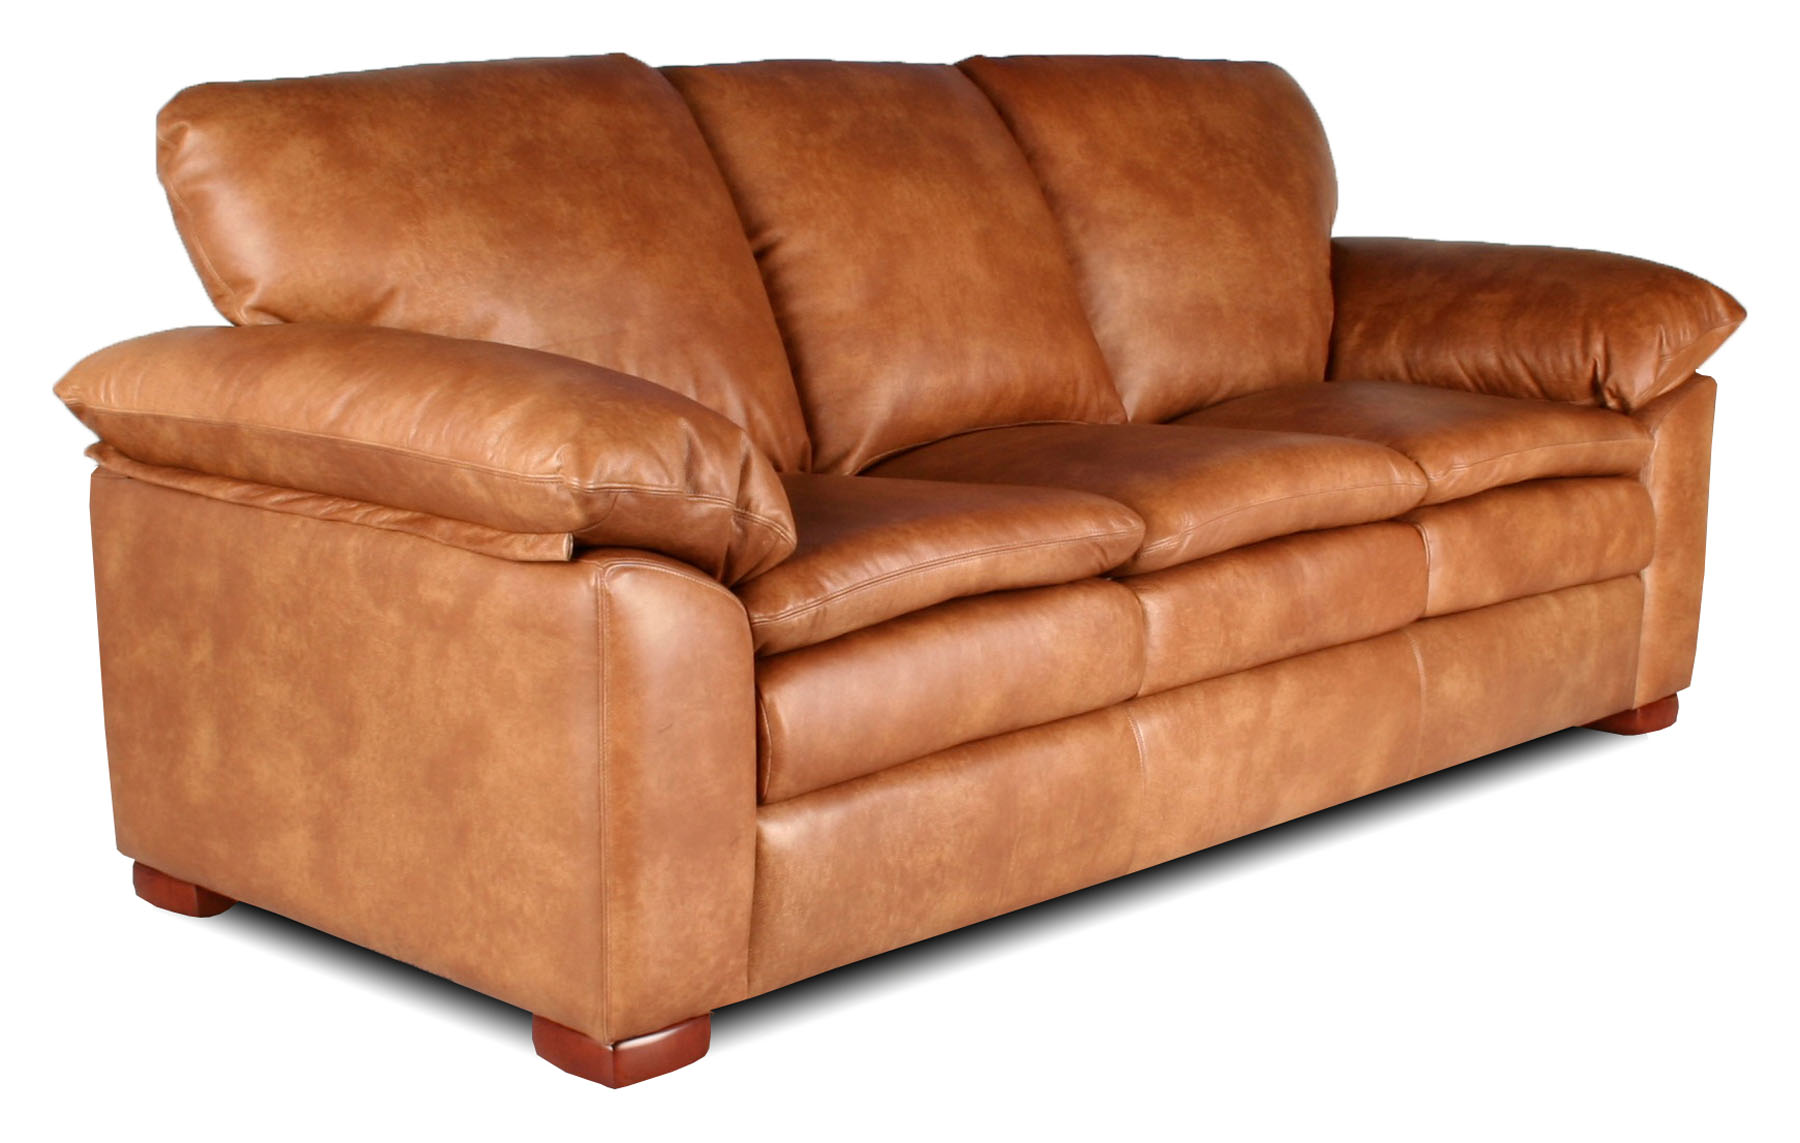 Corinth leather furniture for Leather furniture